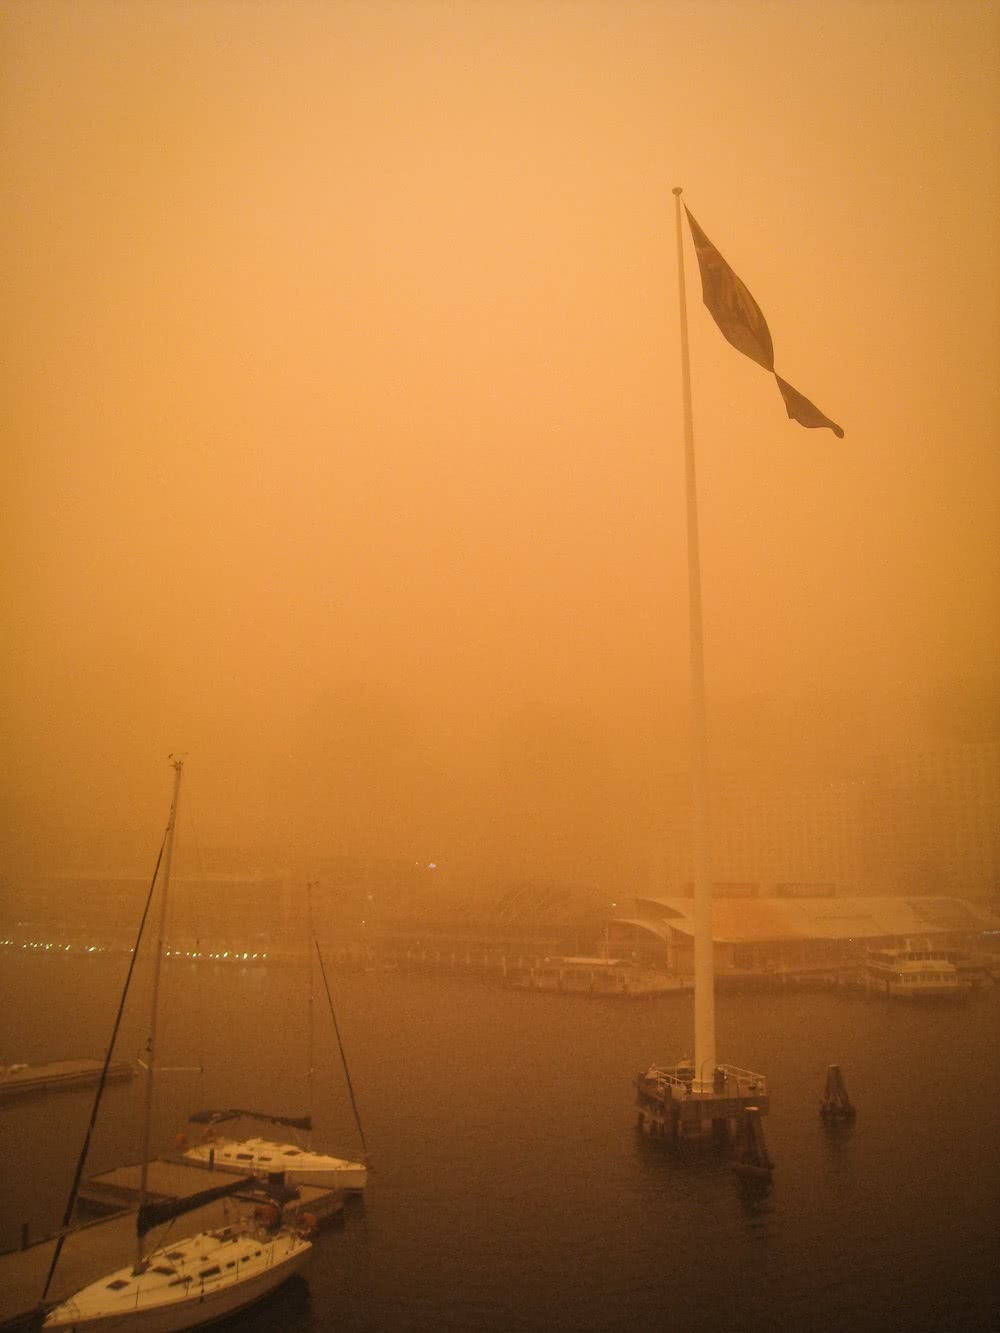 Get Ready - There's Another Dust Storm About To Hit Sydney, kate miles, nsw, sydney, dust storm, orange, flag pole